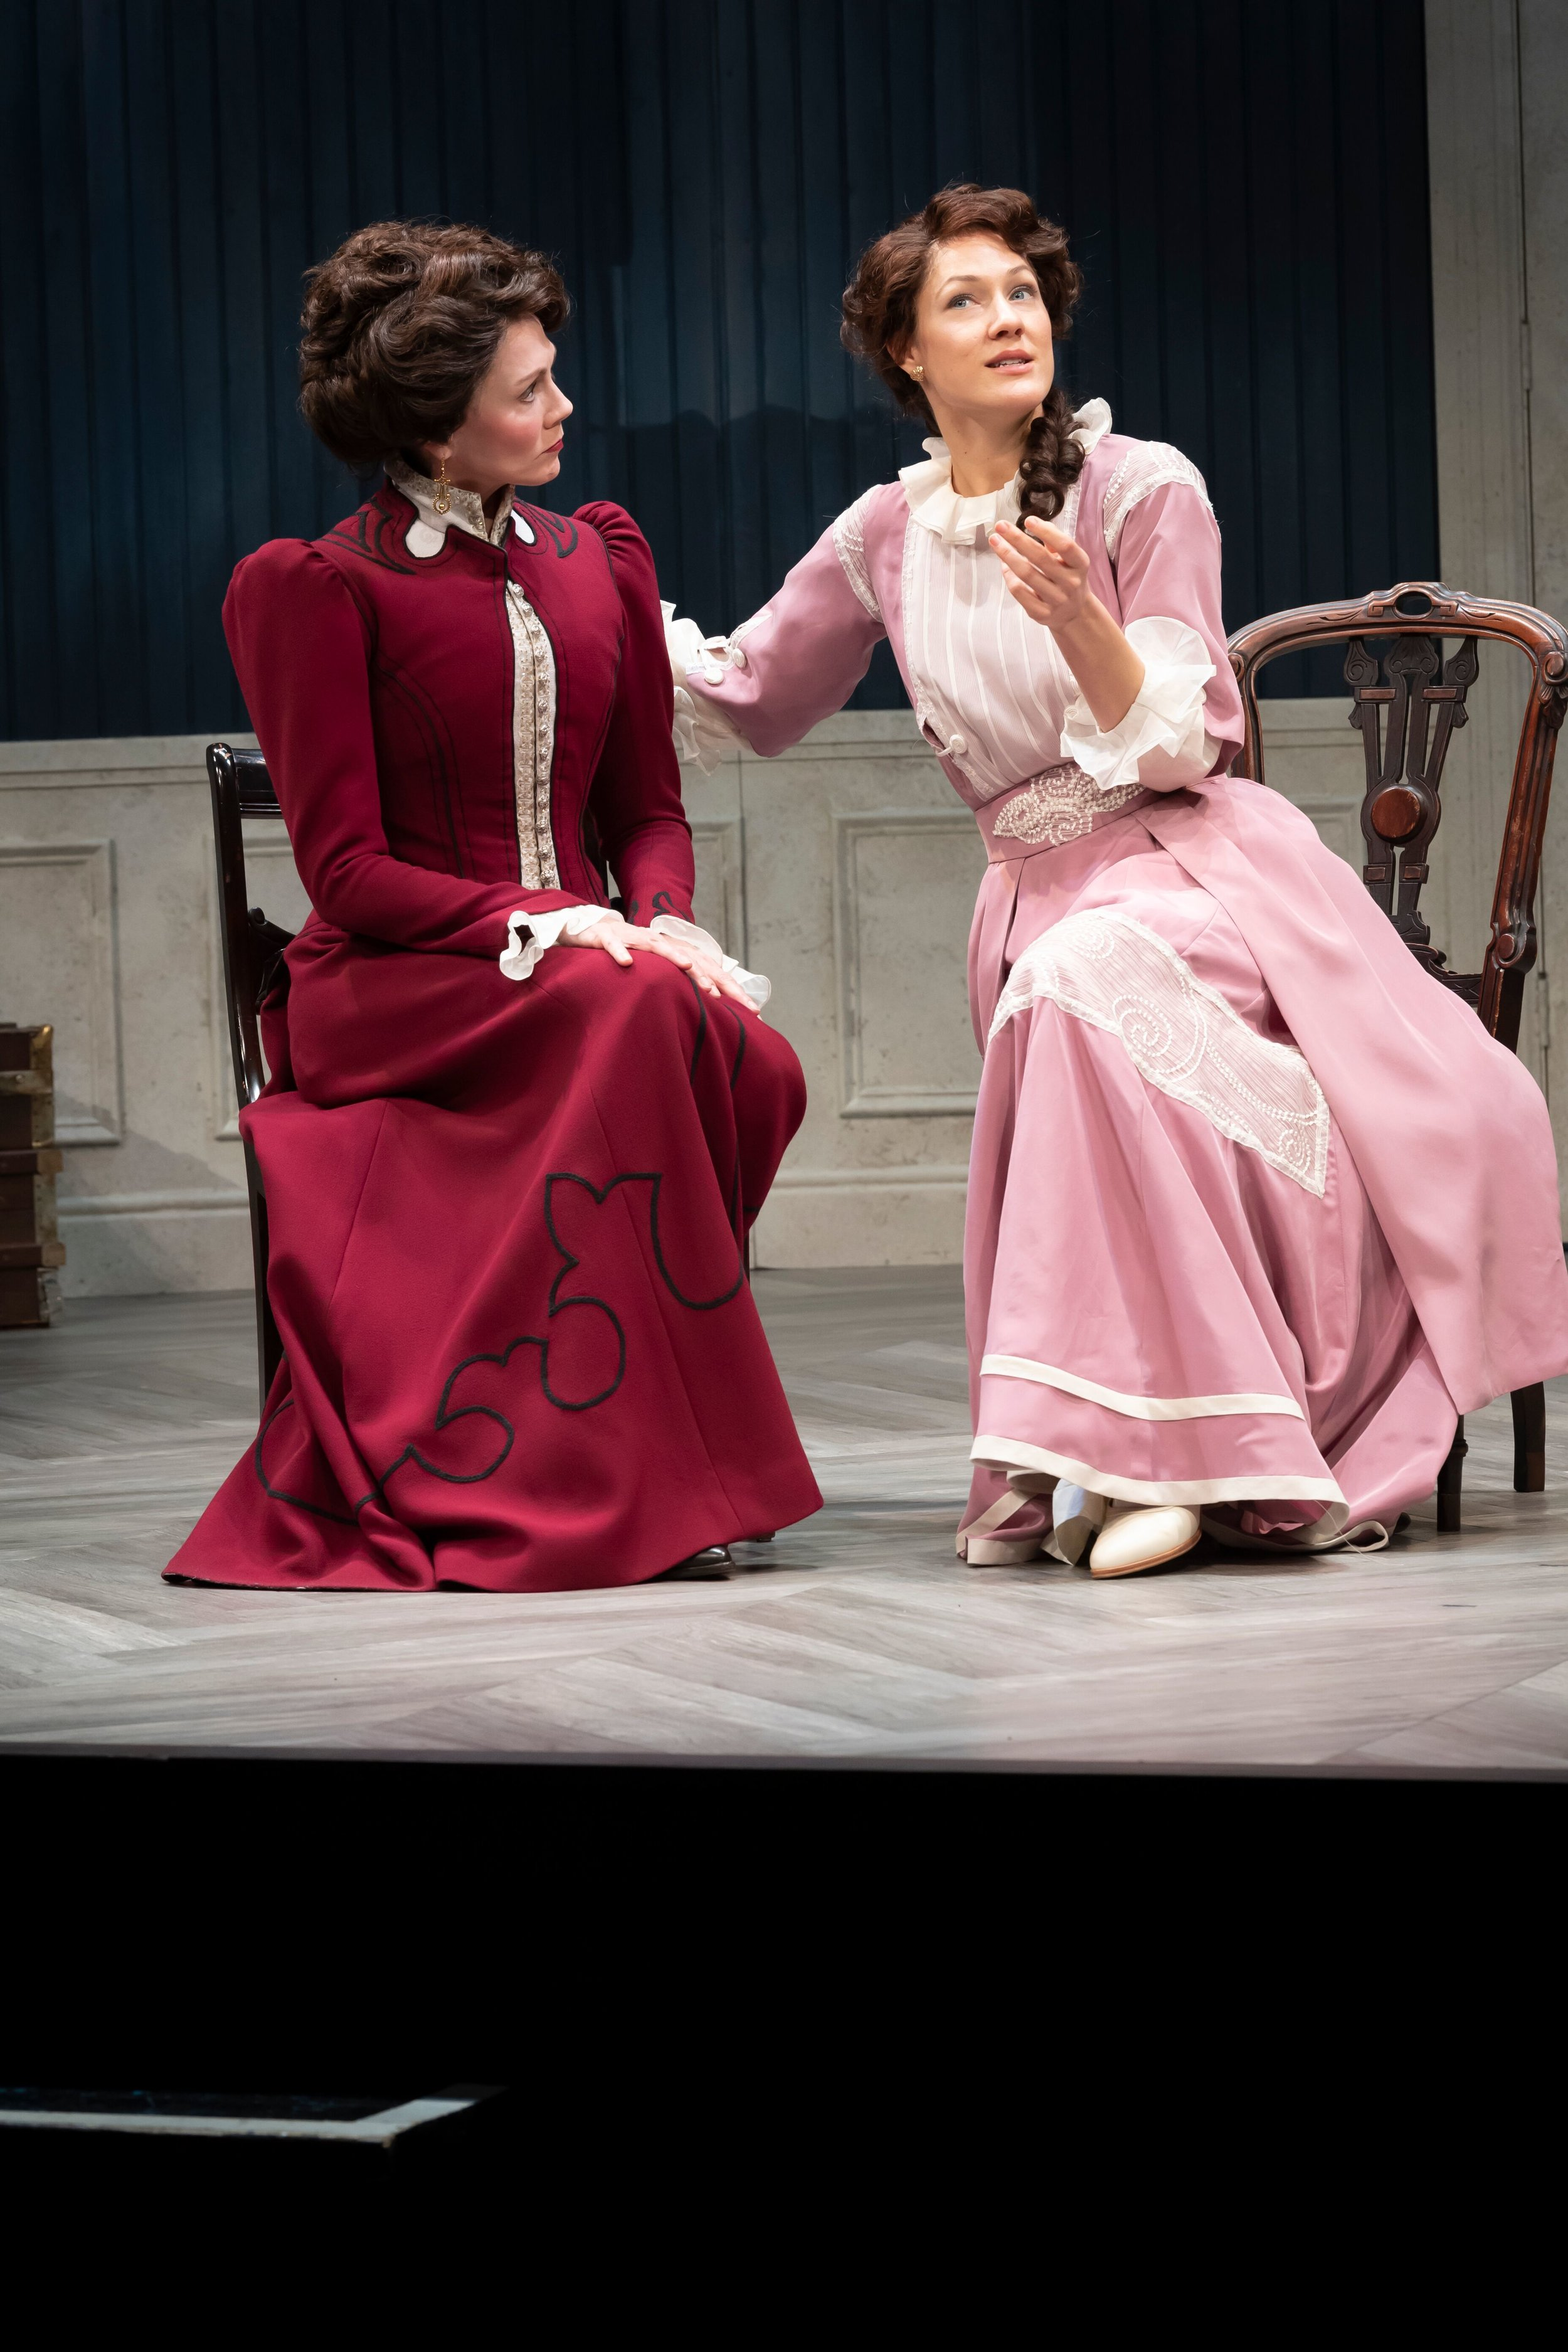 Kate Hampton and Olivia Osol in the Asolo Rep production of A Doll's House, Part 2. Photo by Cliff Roles